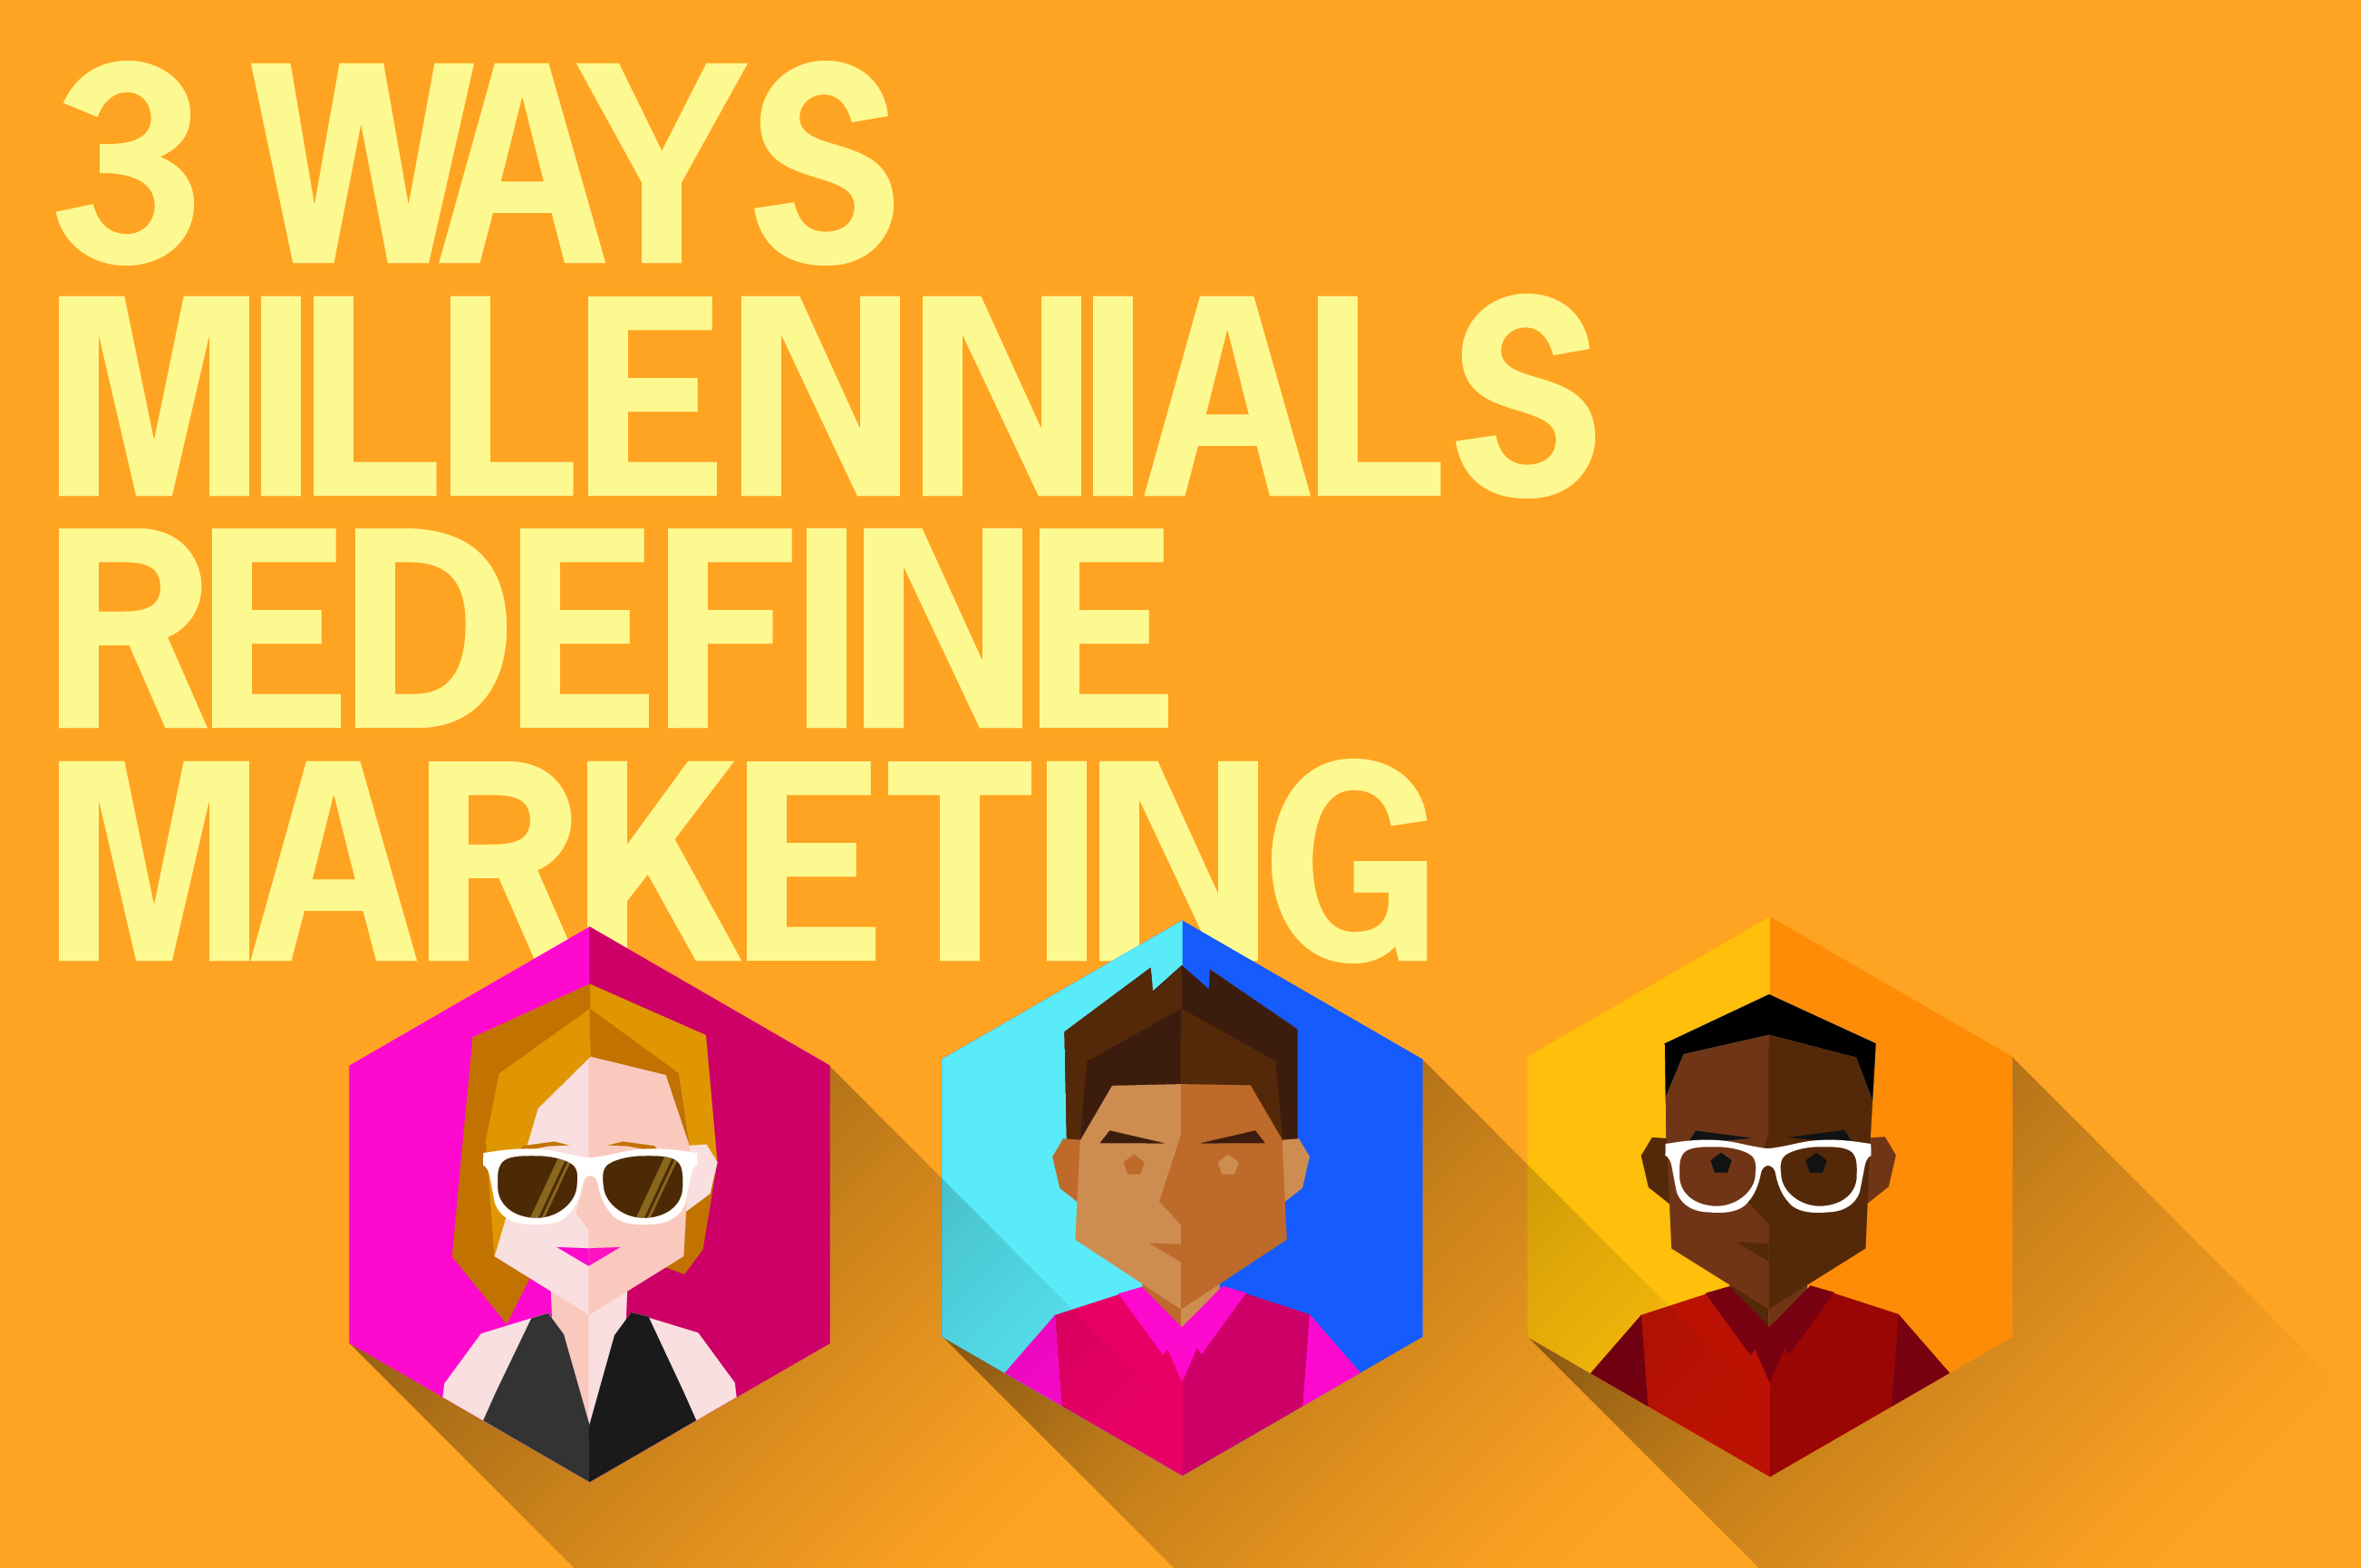 3 Ways millennials shape marketing_Images_012517-01